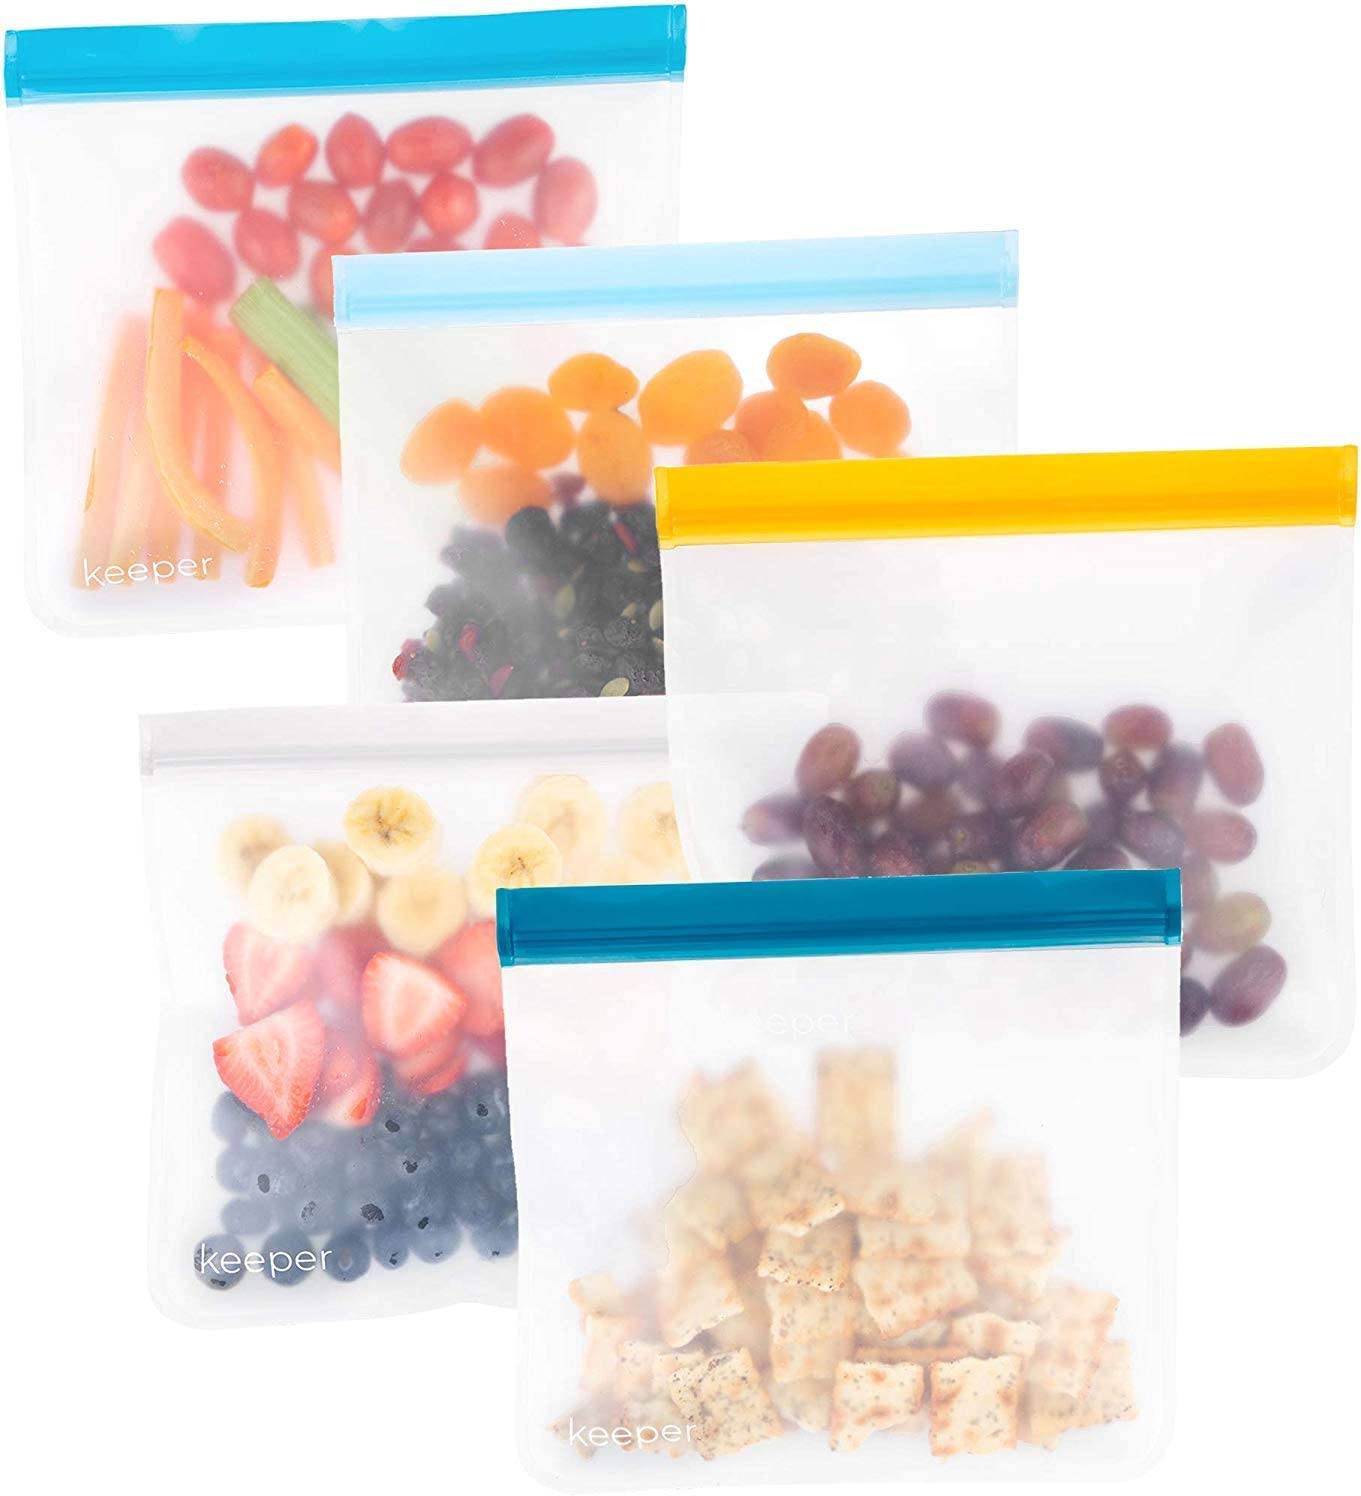 Keeper Reusable Ziplock Bags (5 Set, 32 oz) - Reusable Sandwich Bags For Kids Make Great Lunch Bags. Reusable Snack Bag Keeps Food Fresh. Plastic Food Storage Baggies Are Freezer Safe (Blue Skies)